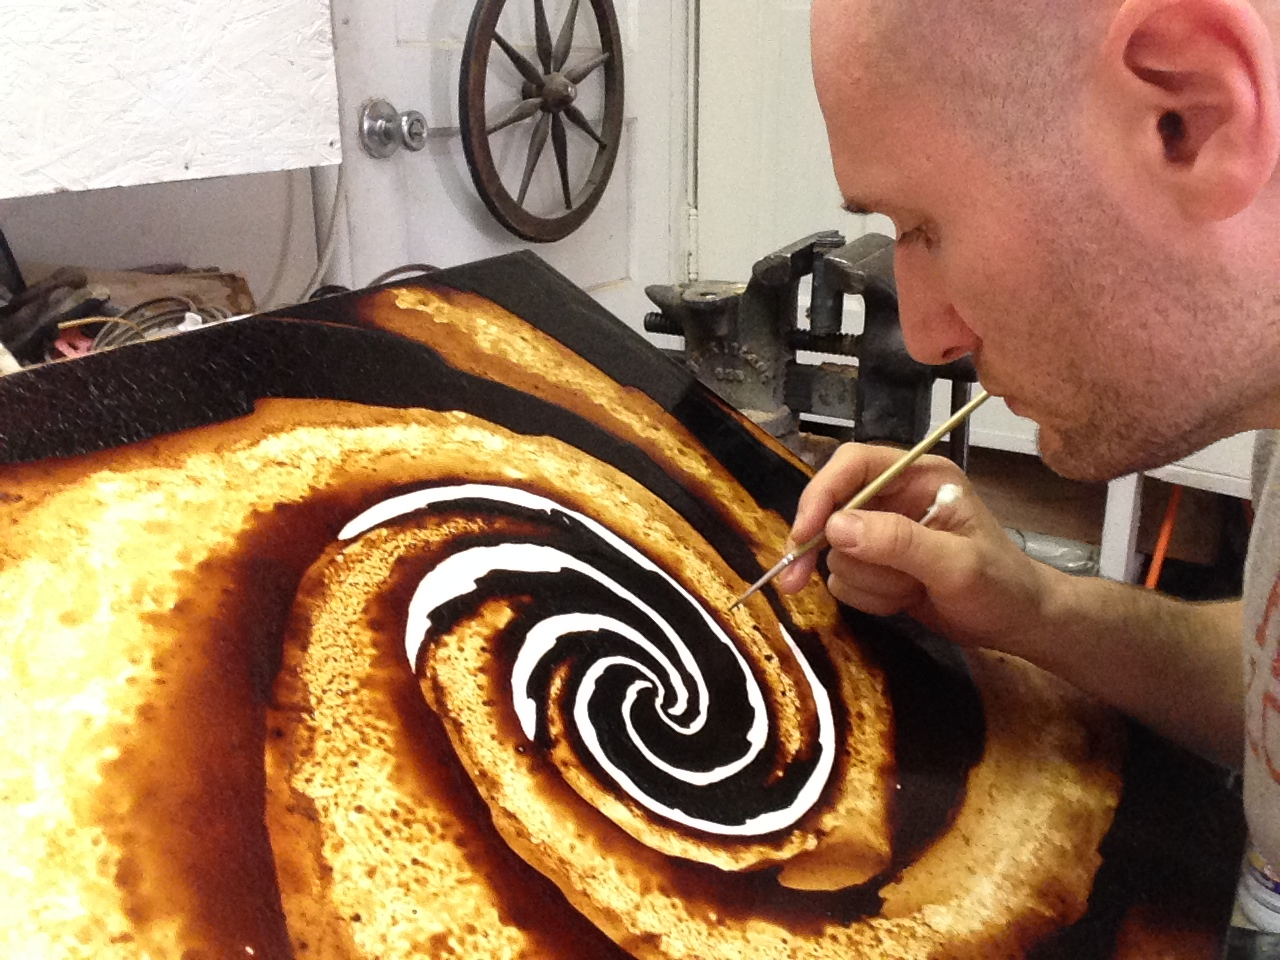 Working on the Galactic Spiral Coffee Art piece.